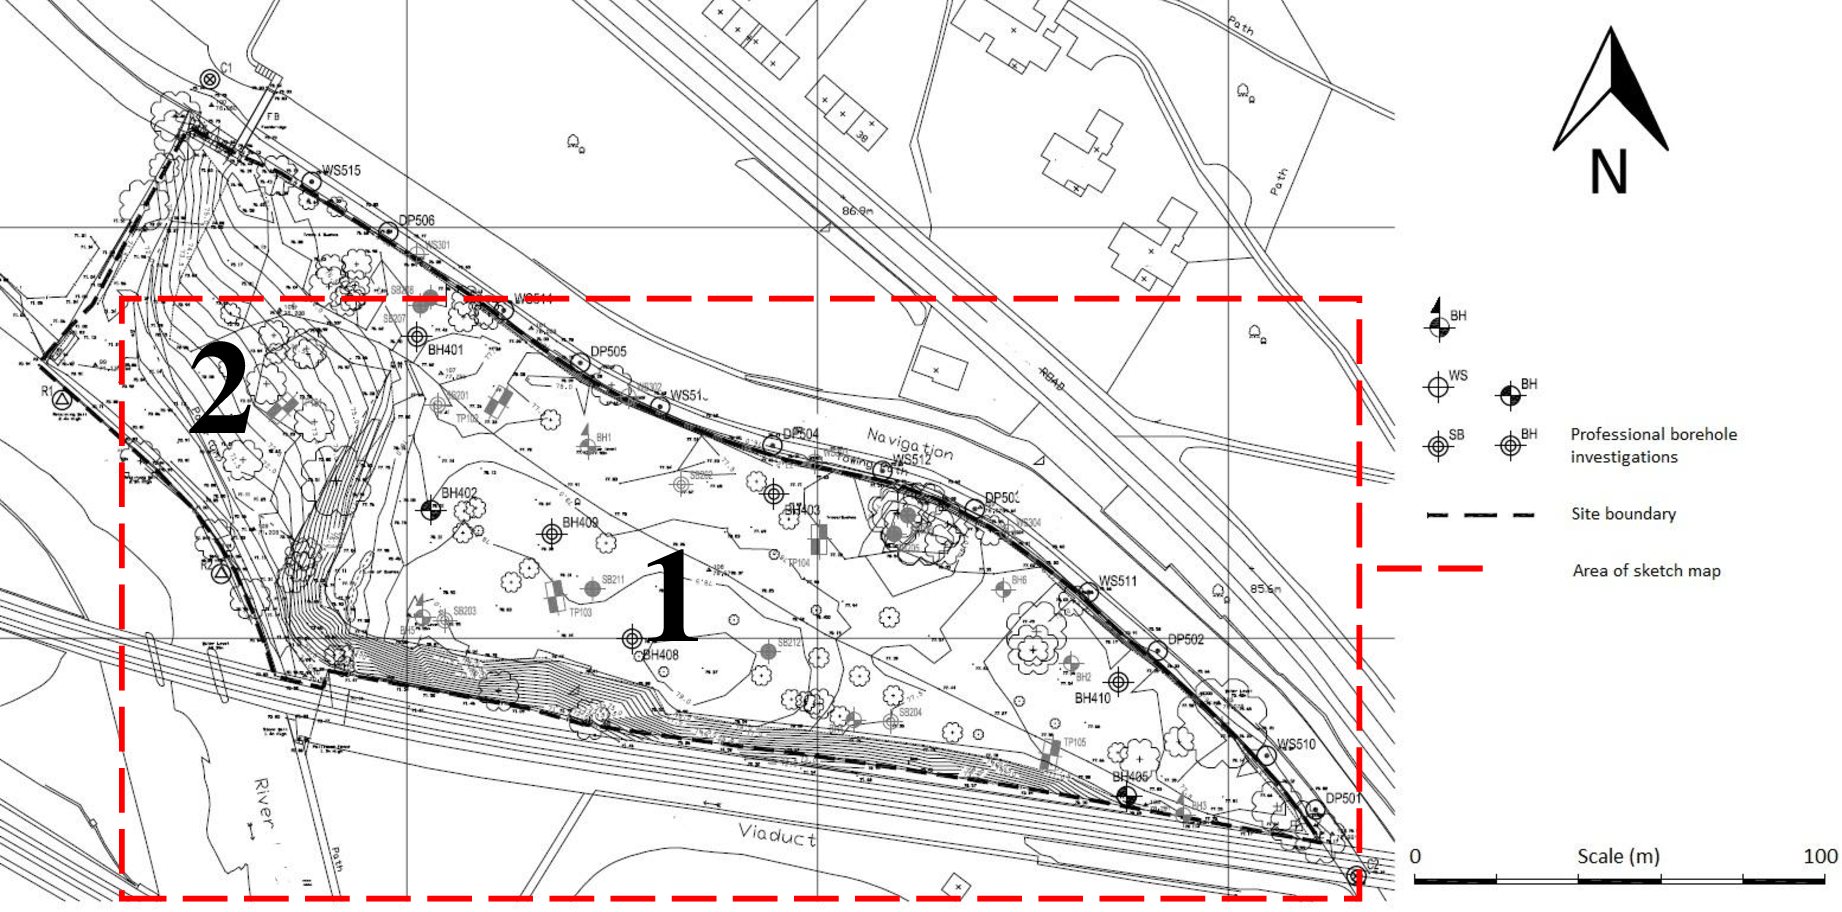 """Figure 2.3 Professional plan of the """"old tip"""" showing the location of two distinct landforms, and boreholes produced during professional site investigations (From WYG report 2005, edited to remove proprietary information)"""